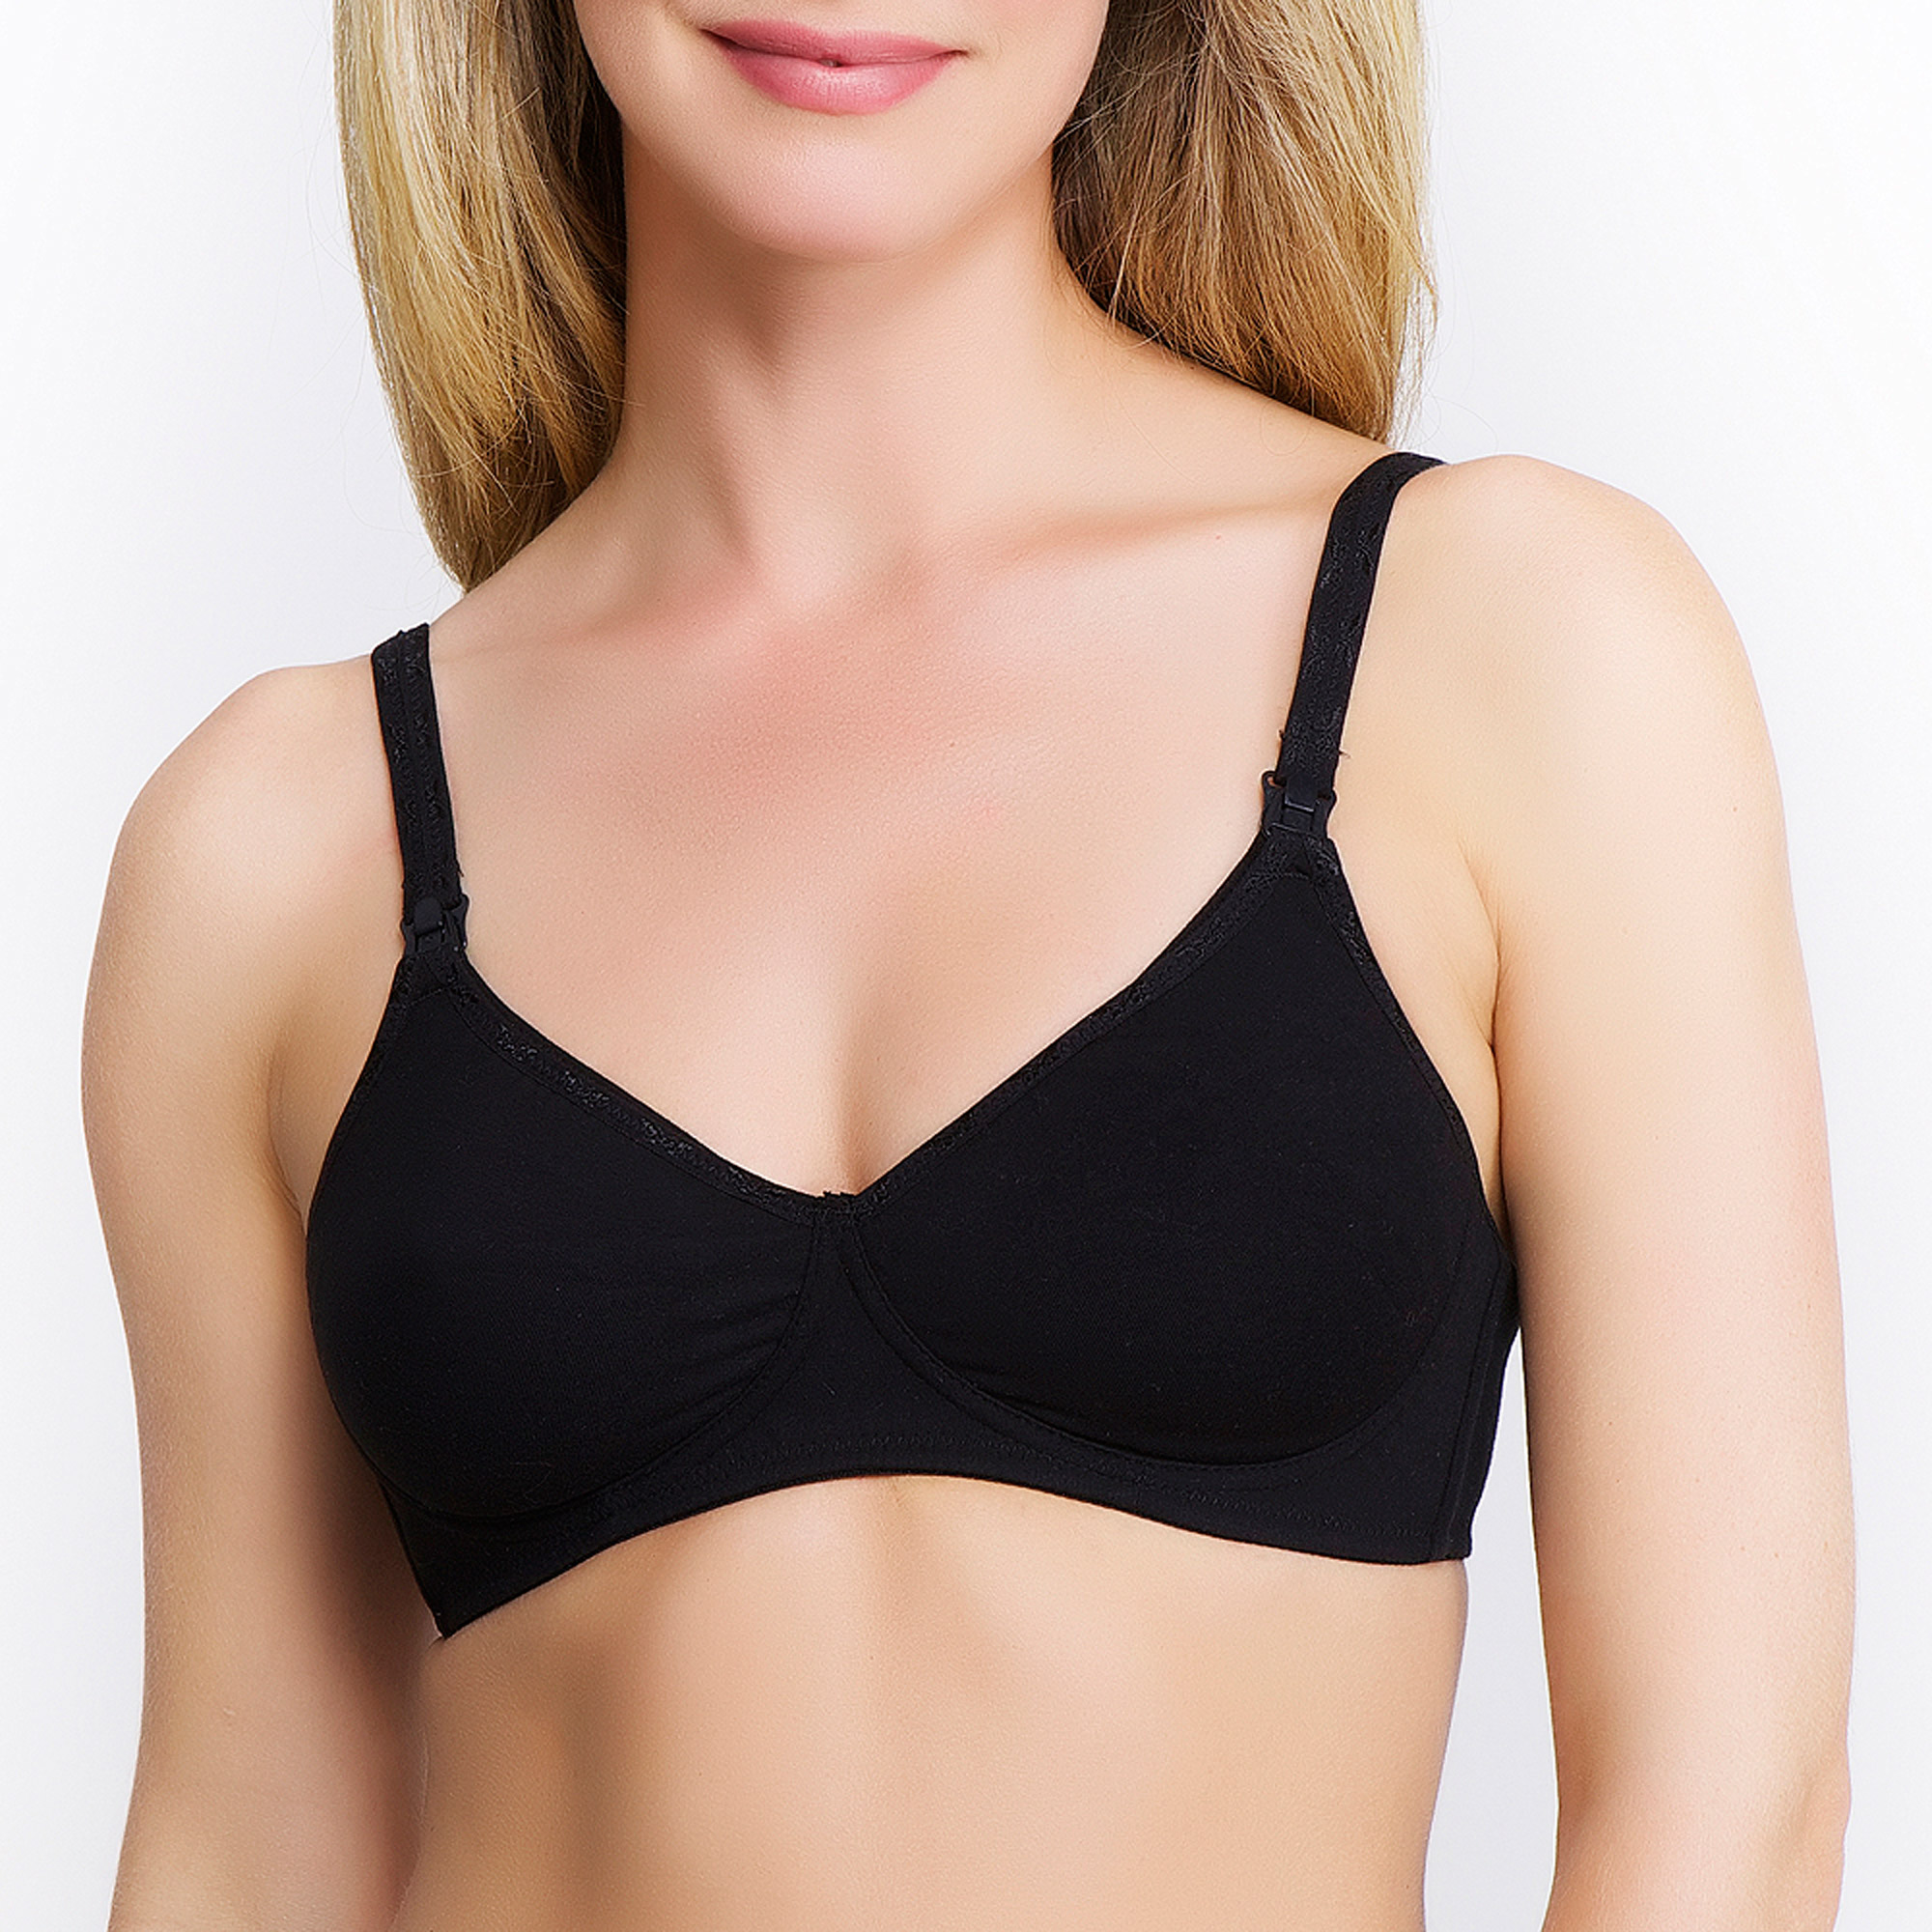 Q-T Intimates Maternity Full-Figure Essential Wire-free Nursing Bra--Up to Size 40G